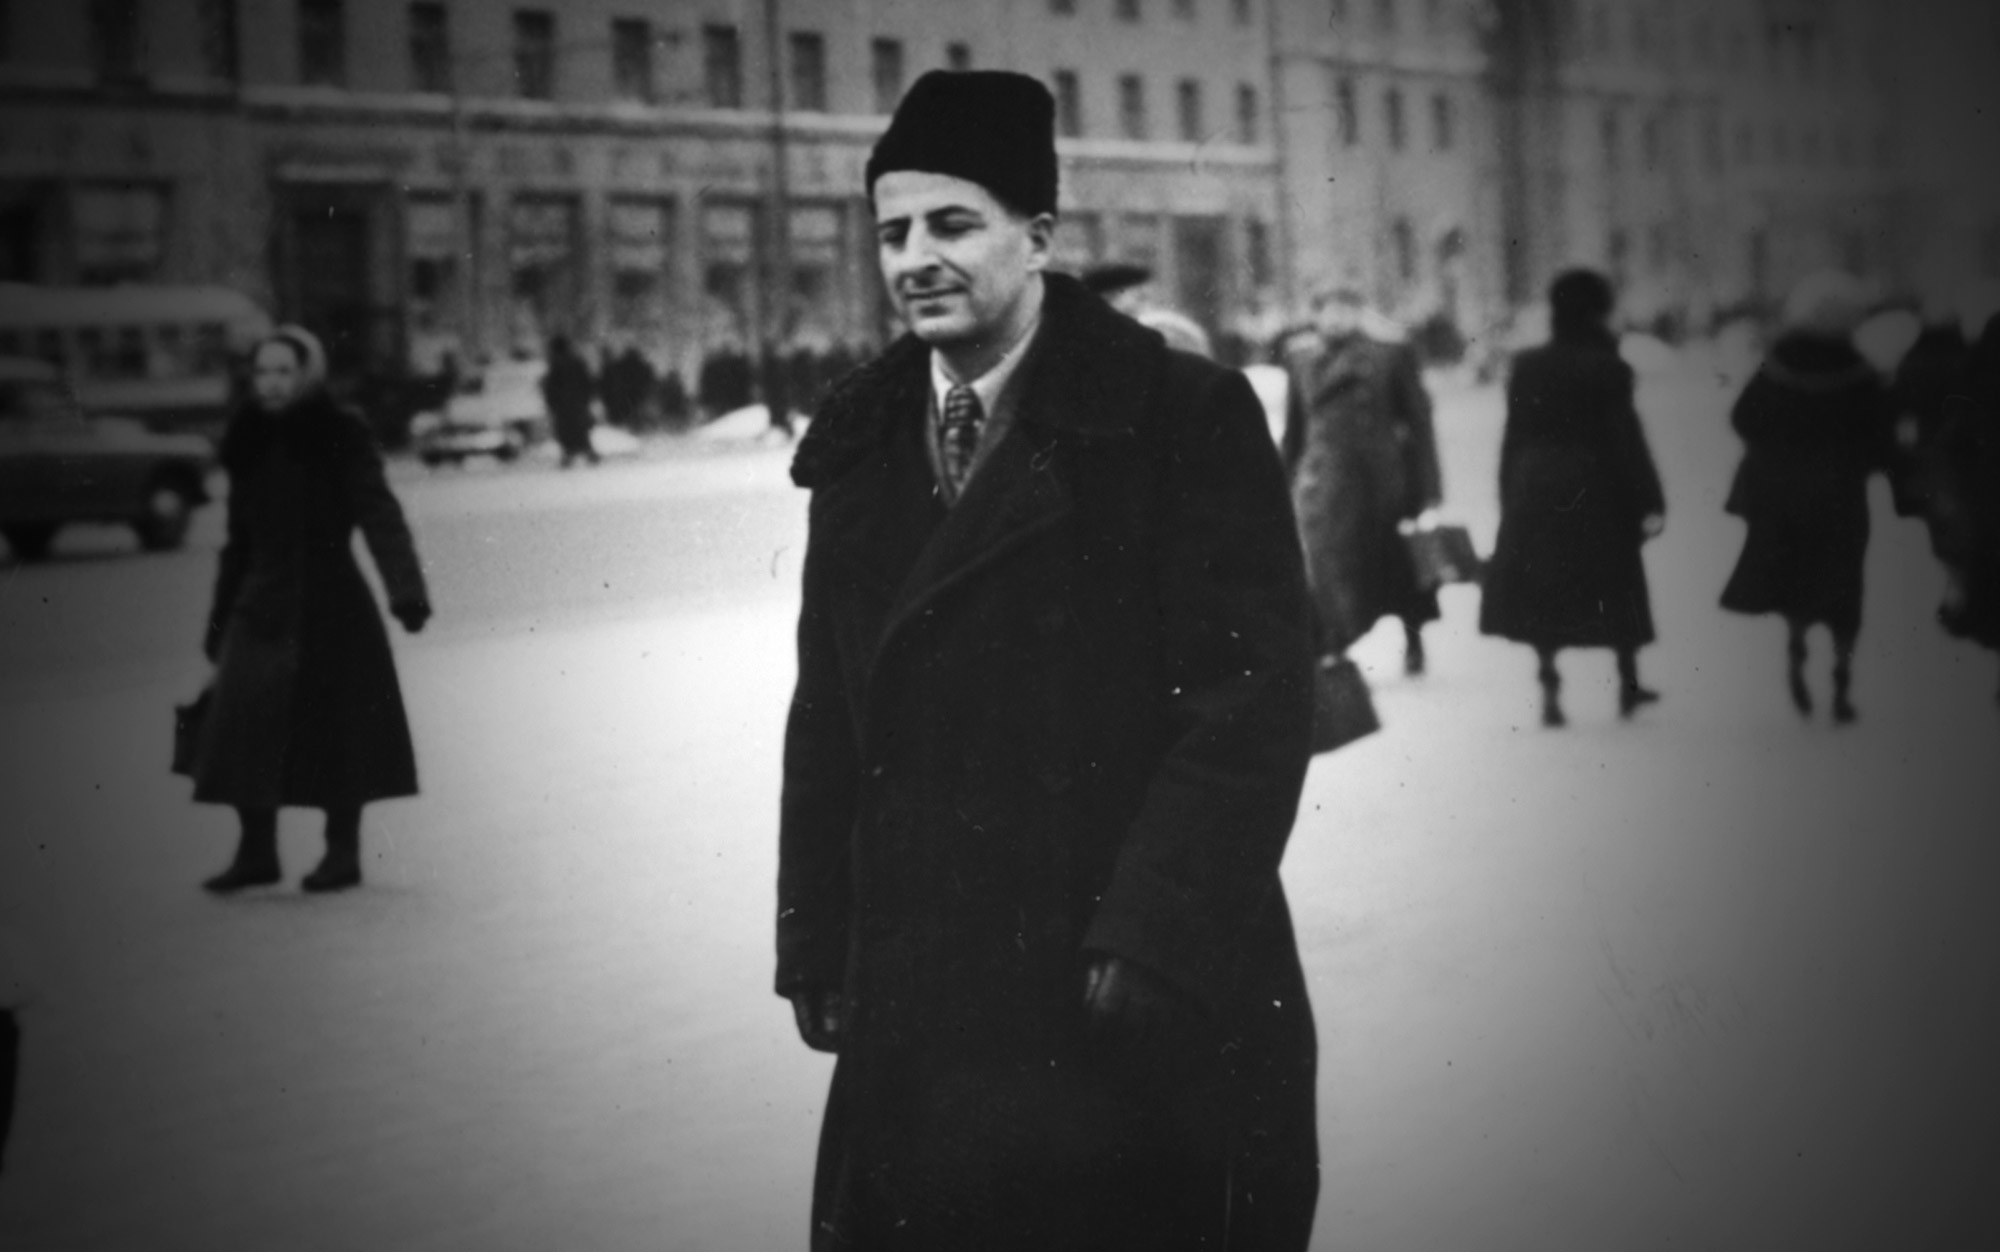 Resultado de imagem para Italian nuclear physicist Bruno Pontecorvo walks through the streets of Moscow following his defection to Russia, 12 March 1955. Photo by Hulton Archive/Getty Images